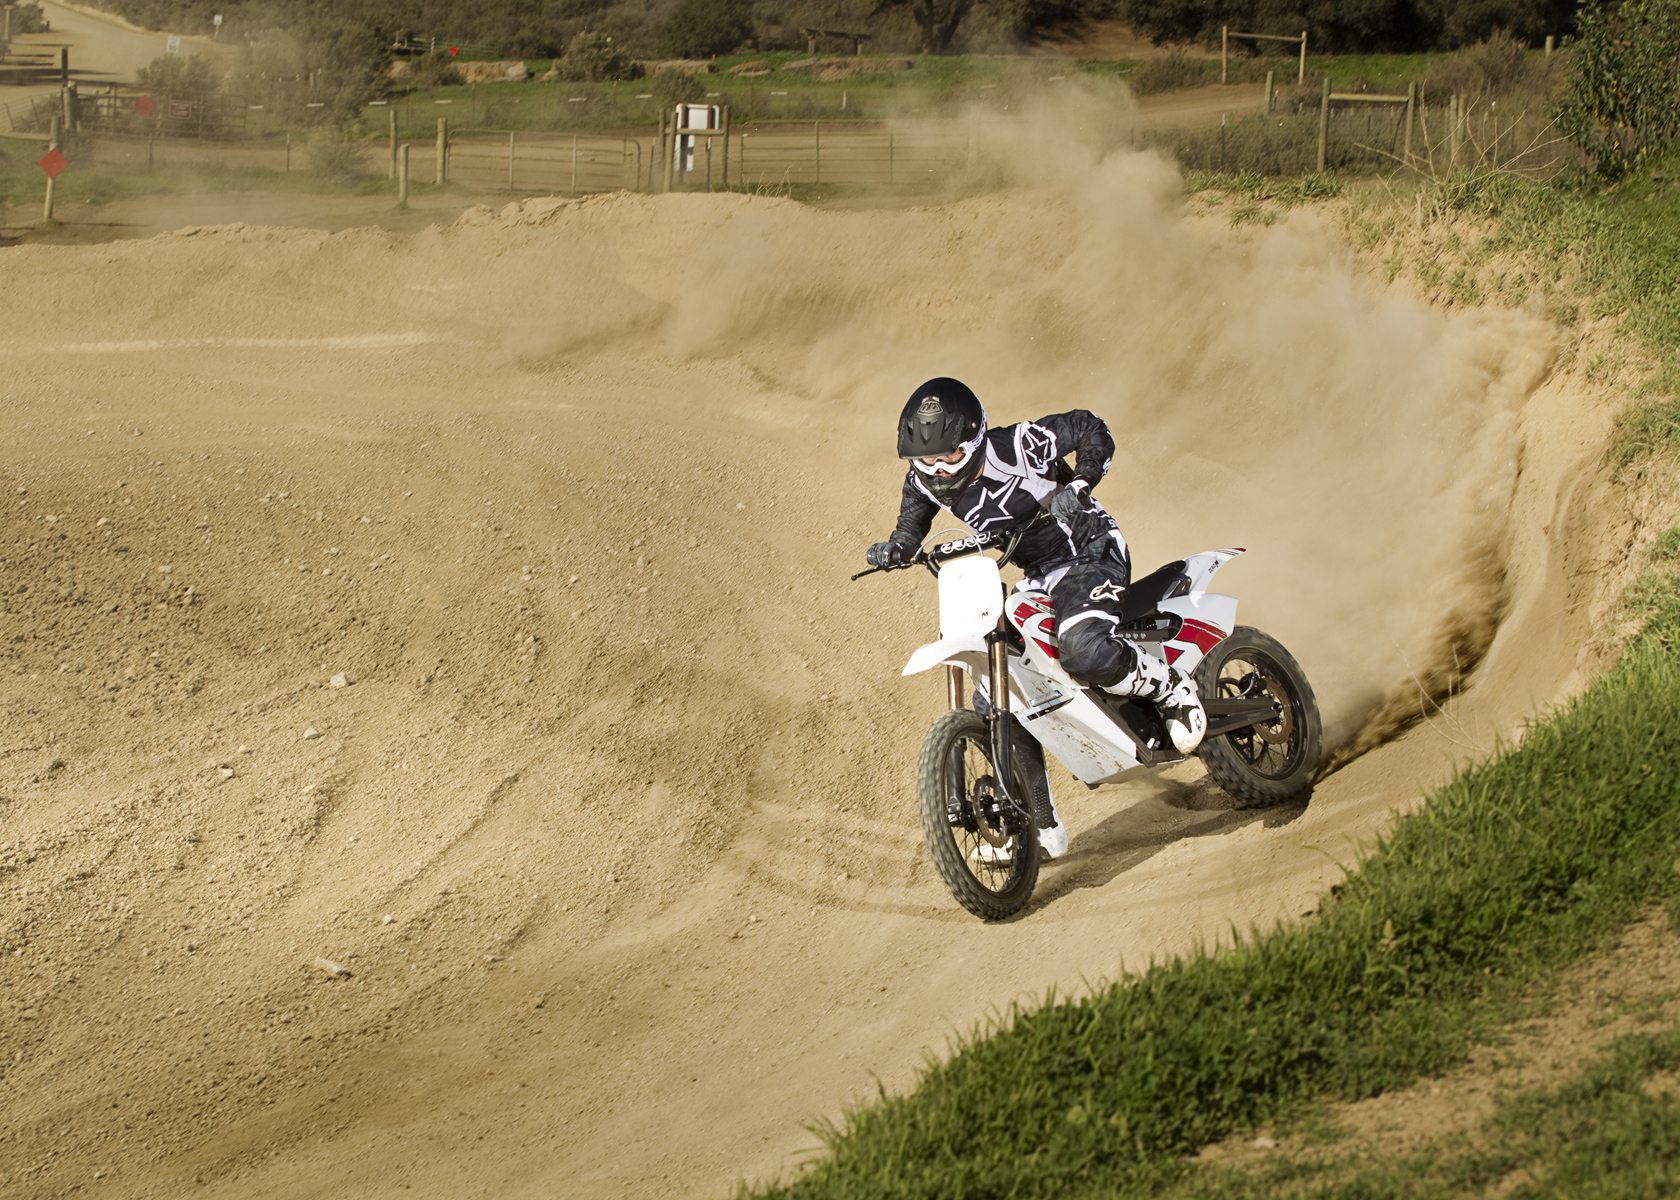 2011 Zero MX Electric Motorcycle: Turn on Track, Foot Down